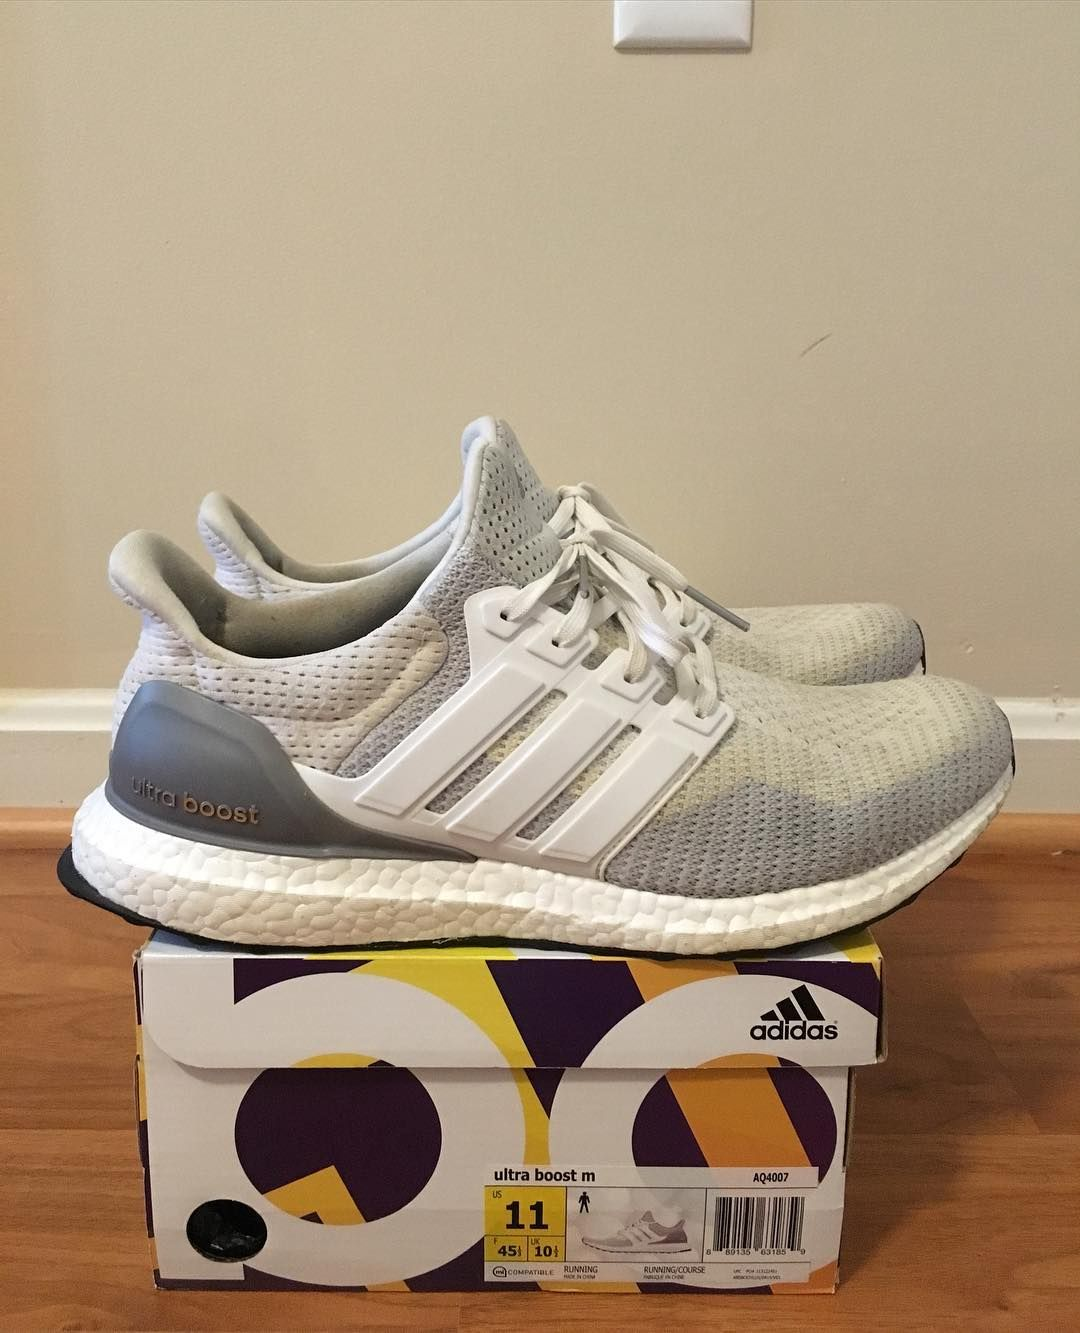 49077096477b0 For sale  Used Ultra Boost! 100% authentic! DM me your offers. Only ...